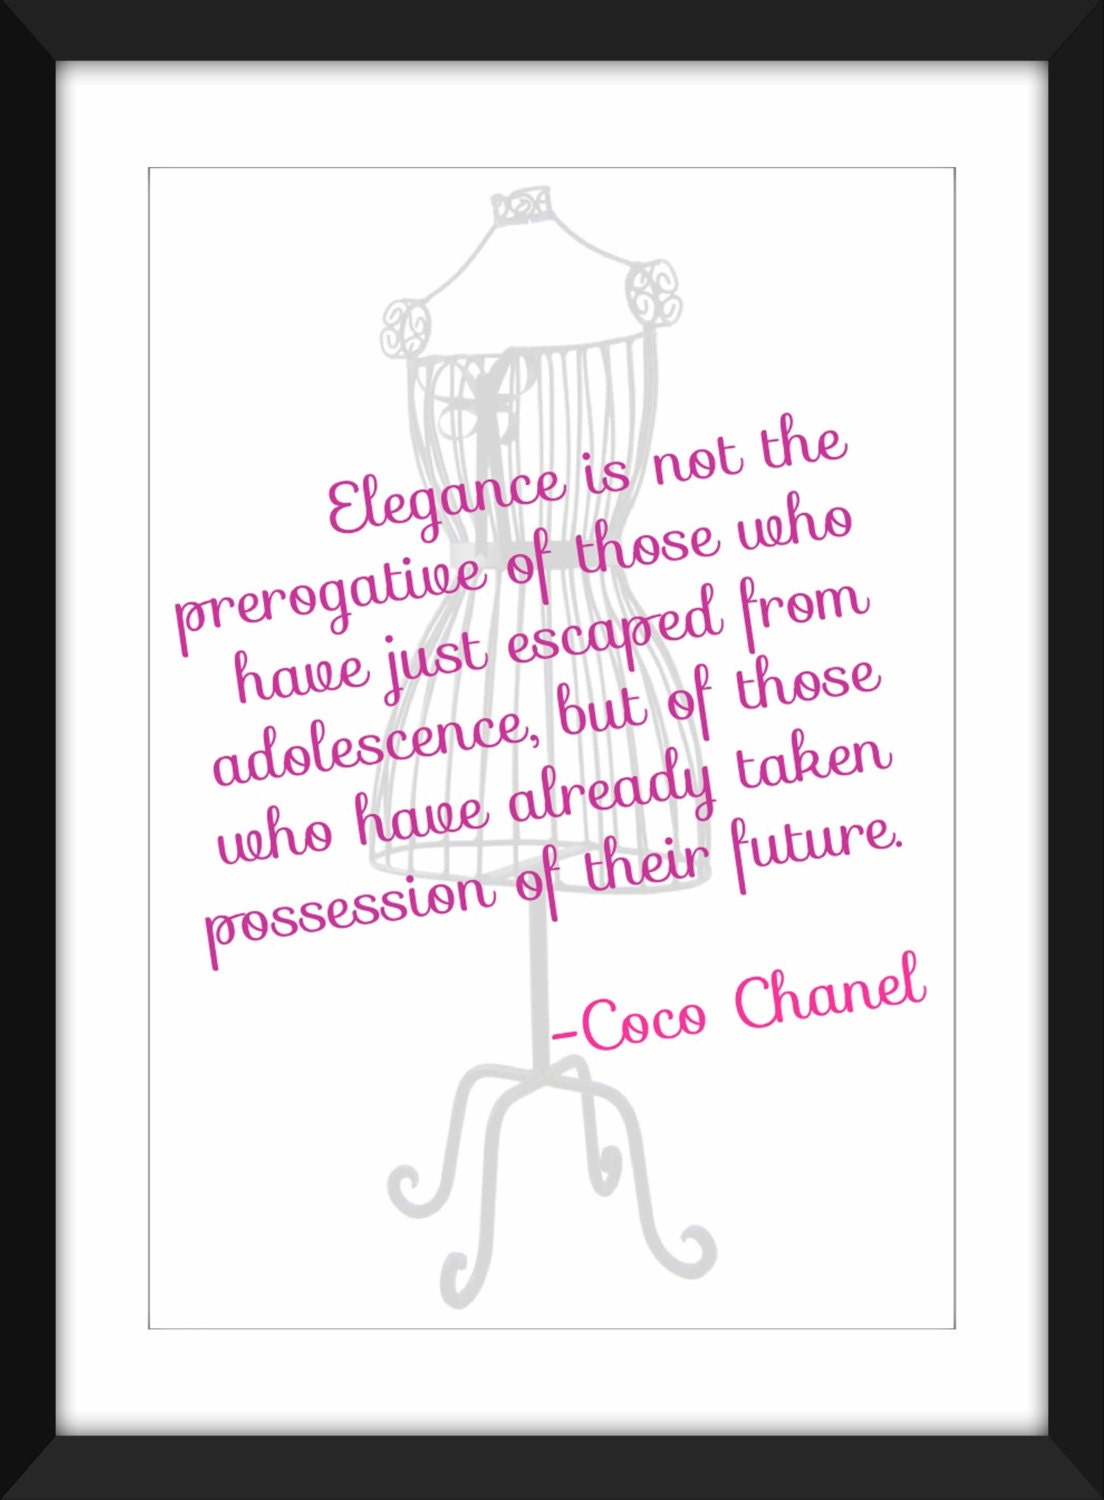 Coco Chanel Elegance Quote Unframed Print